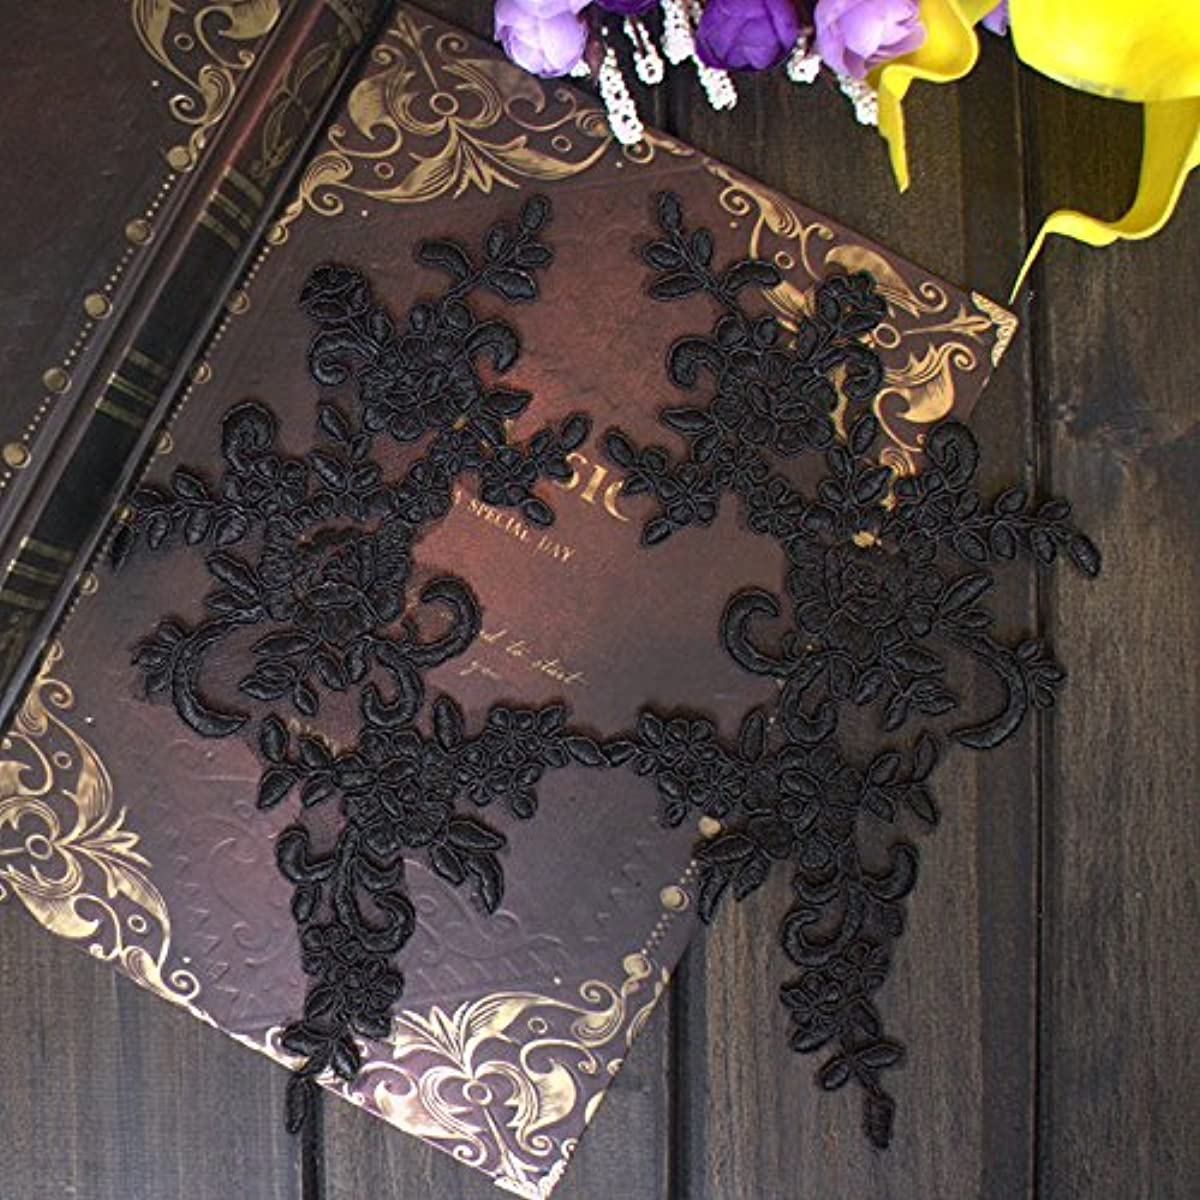 2 Pcs Flower Lace Patches for Wedding Dress DIY Clothing Flower Applique Collar Material (Black)